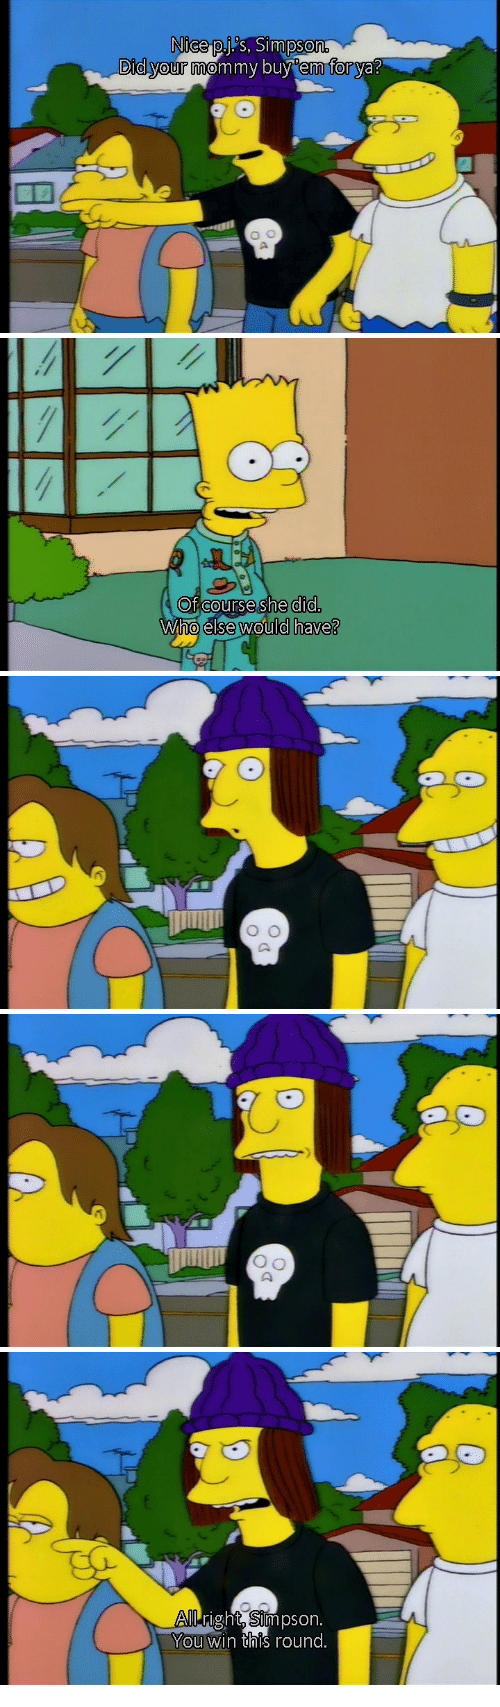 Simpson, Who, and Did: Of courseshe did.  Who else would have?   right. Simpson  You win this round